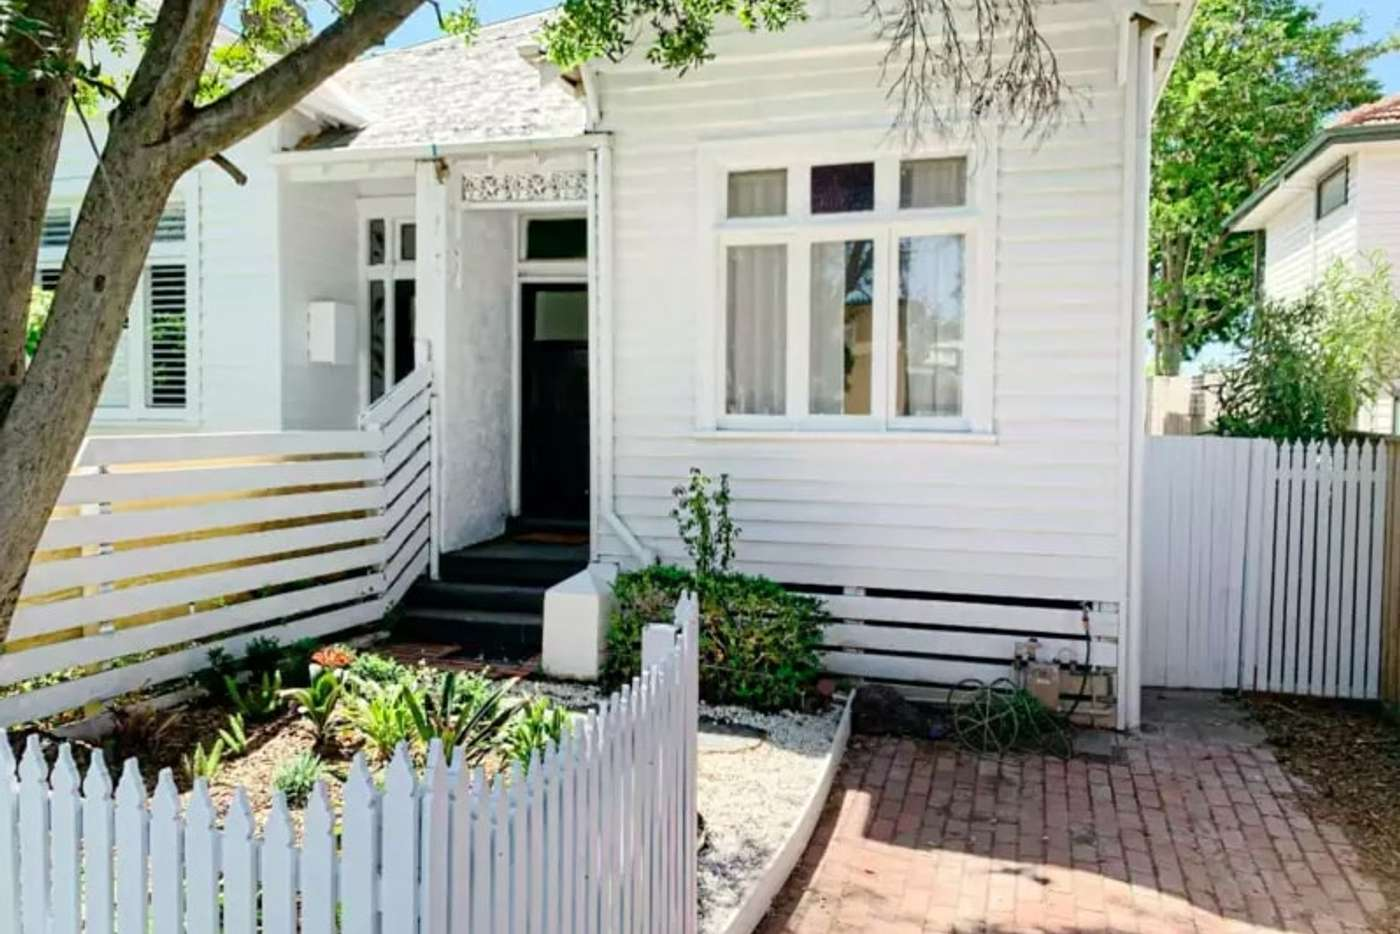 Main view of Homely house listing, 17 Leopold Street, Glen Iris VIC 3146